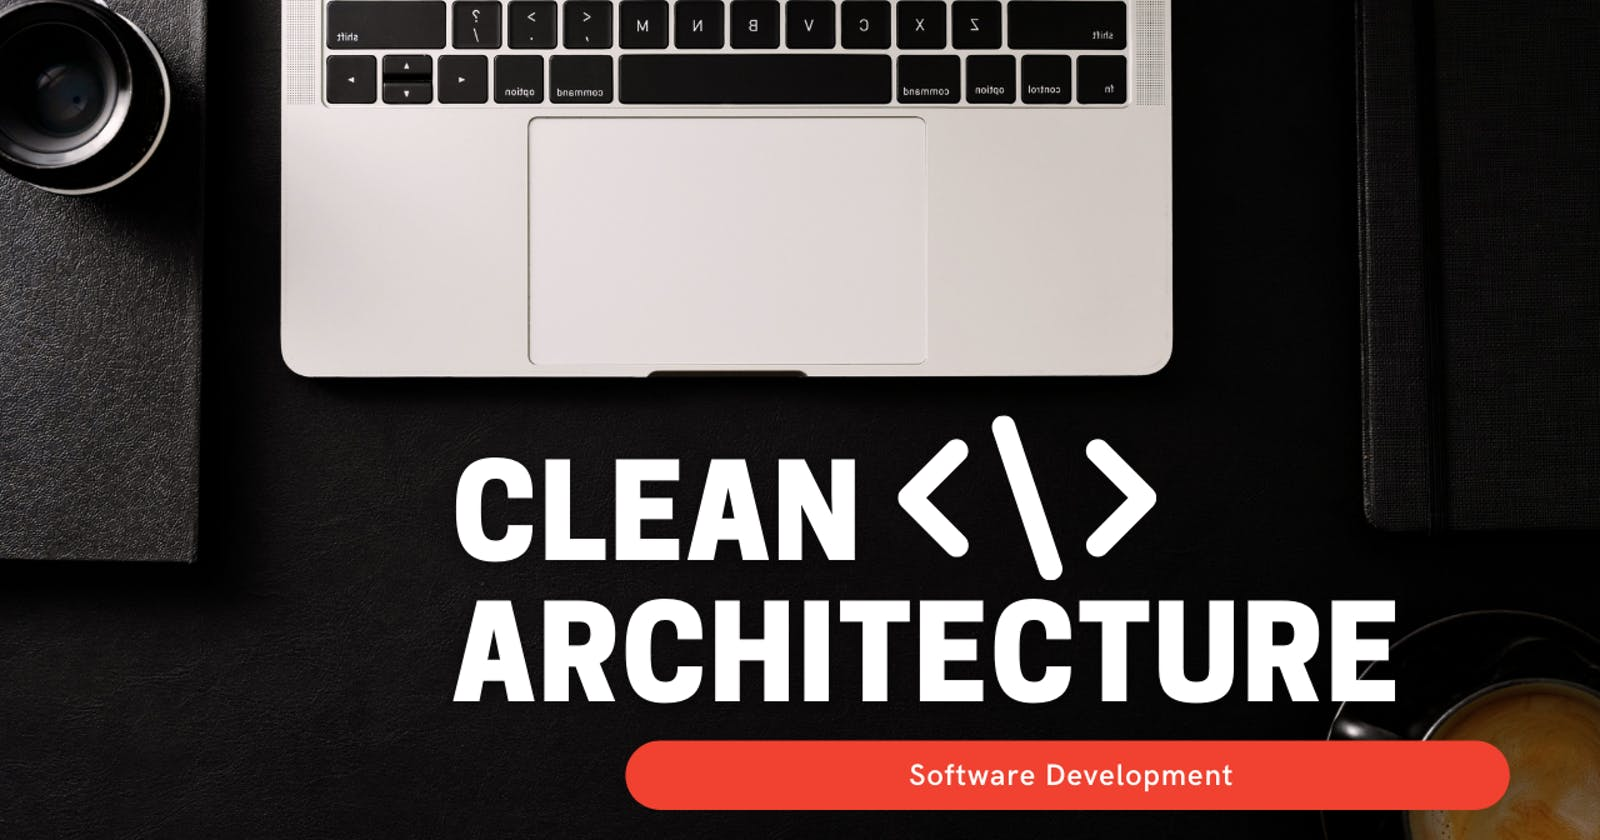 Do you know the Clean Architecture of designing software projects?